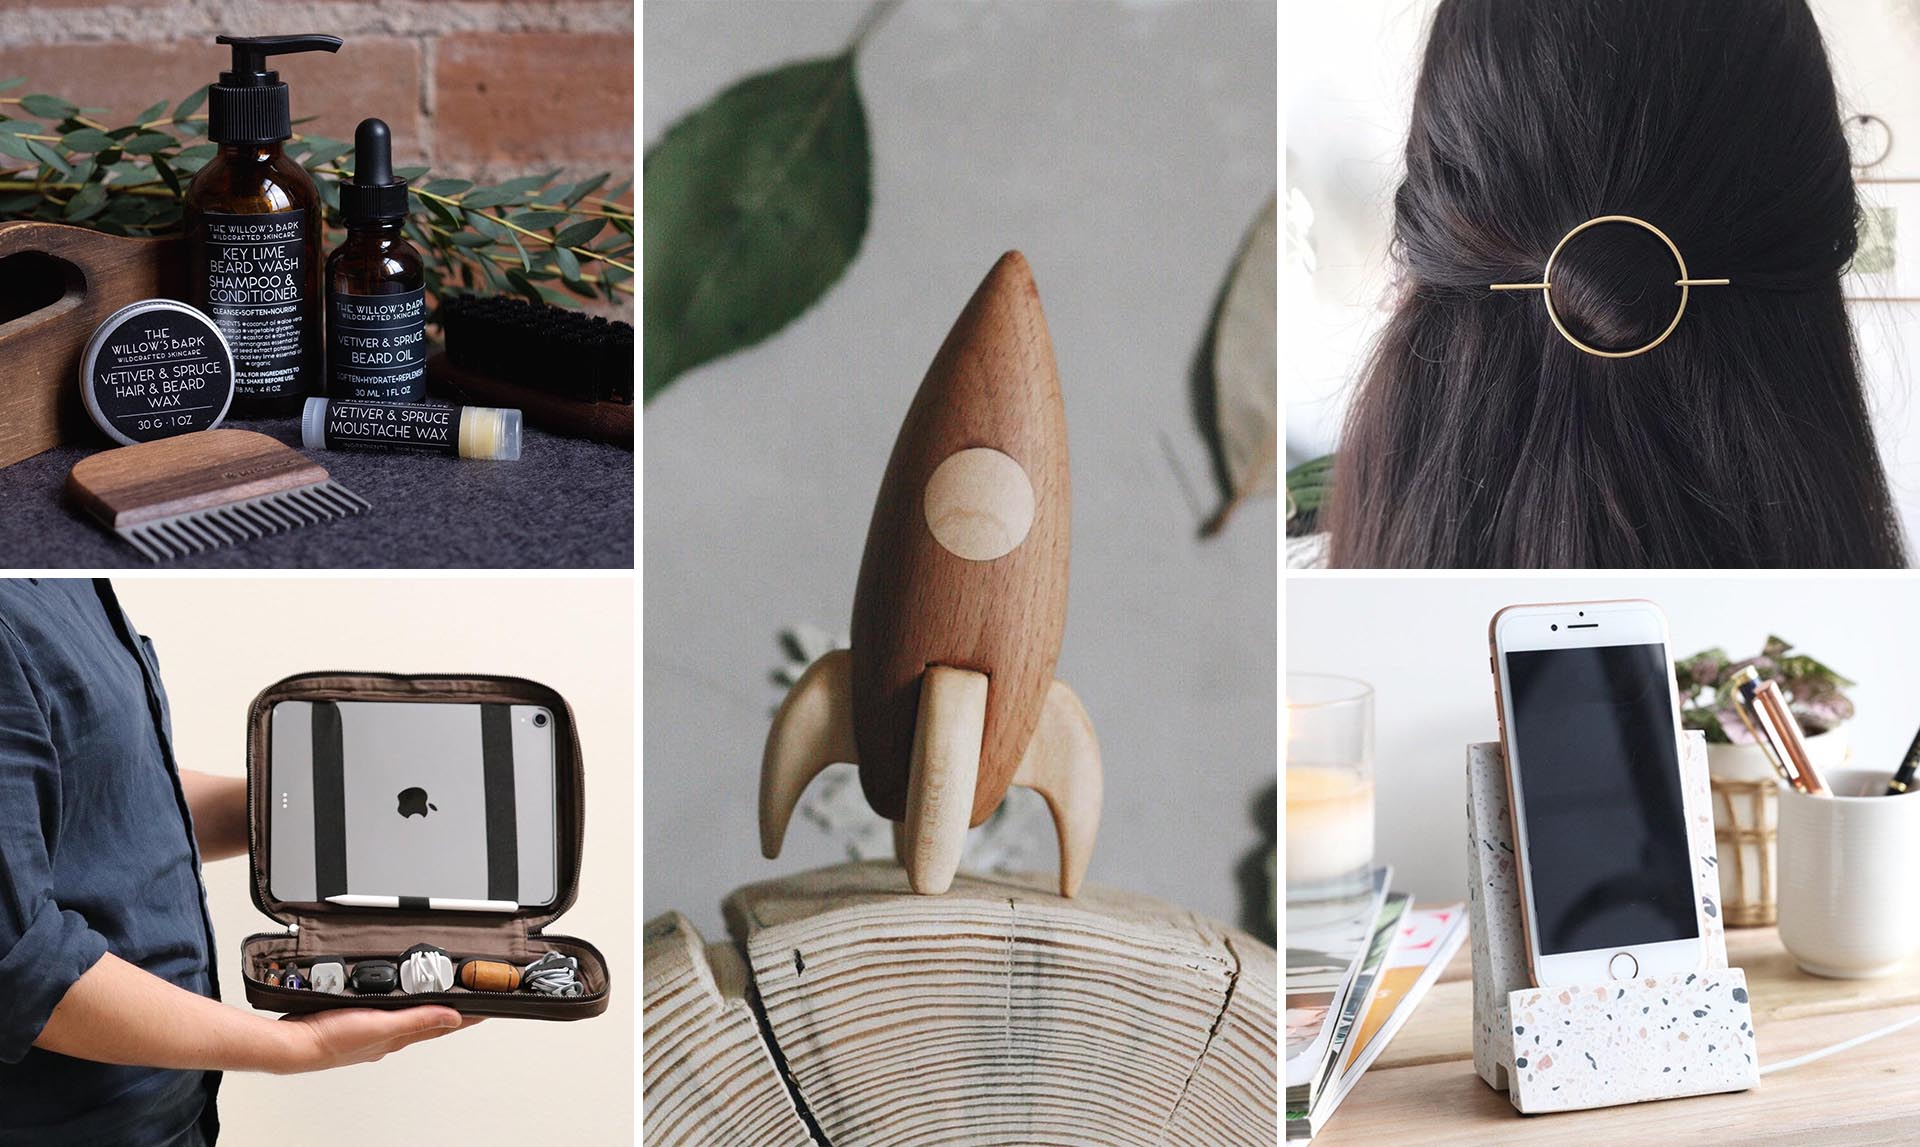 40+ Modern Christmas Gift Ideas For Friends And Family